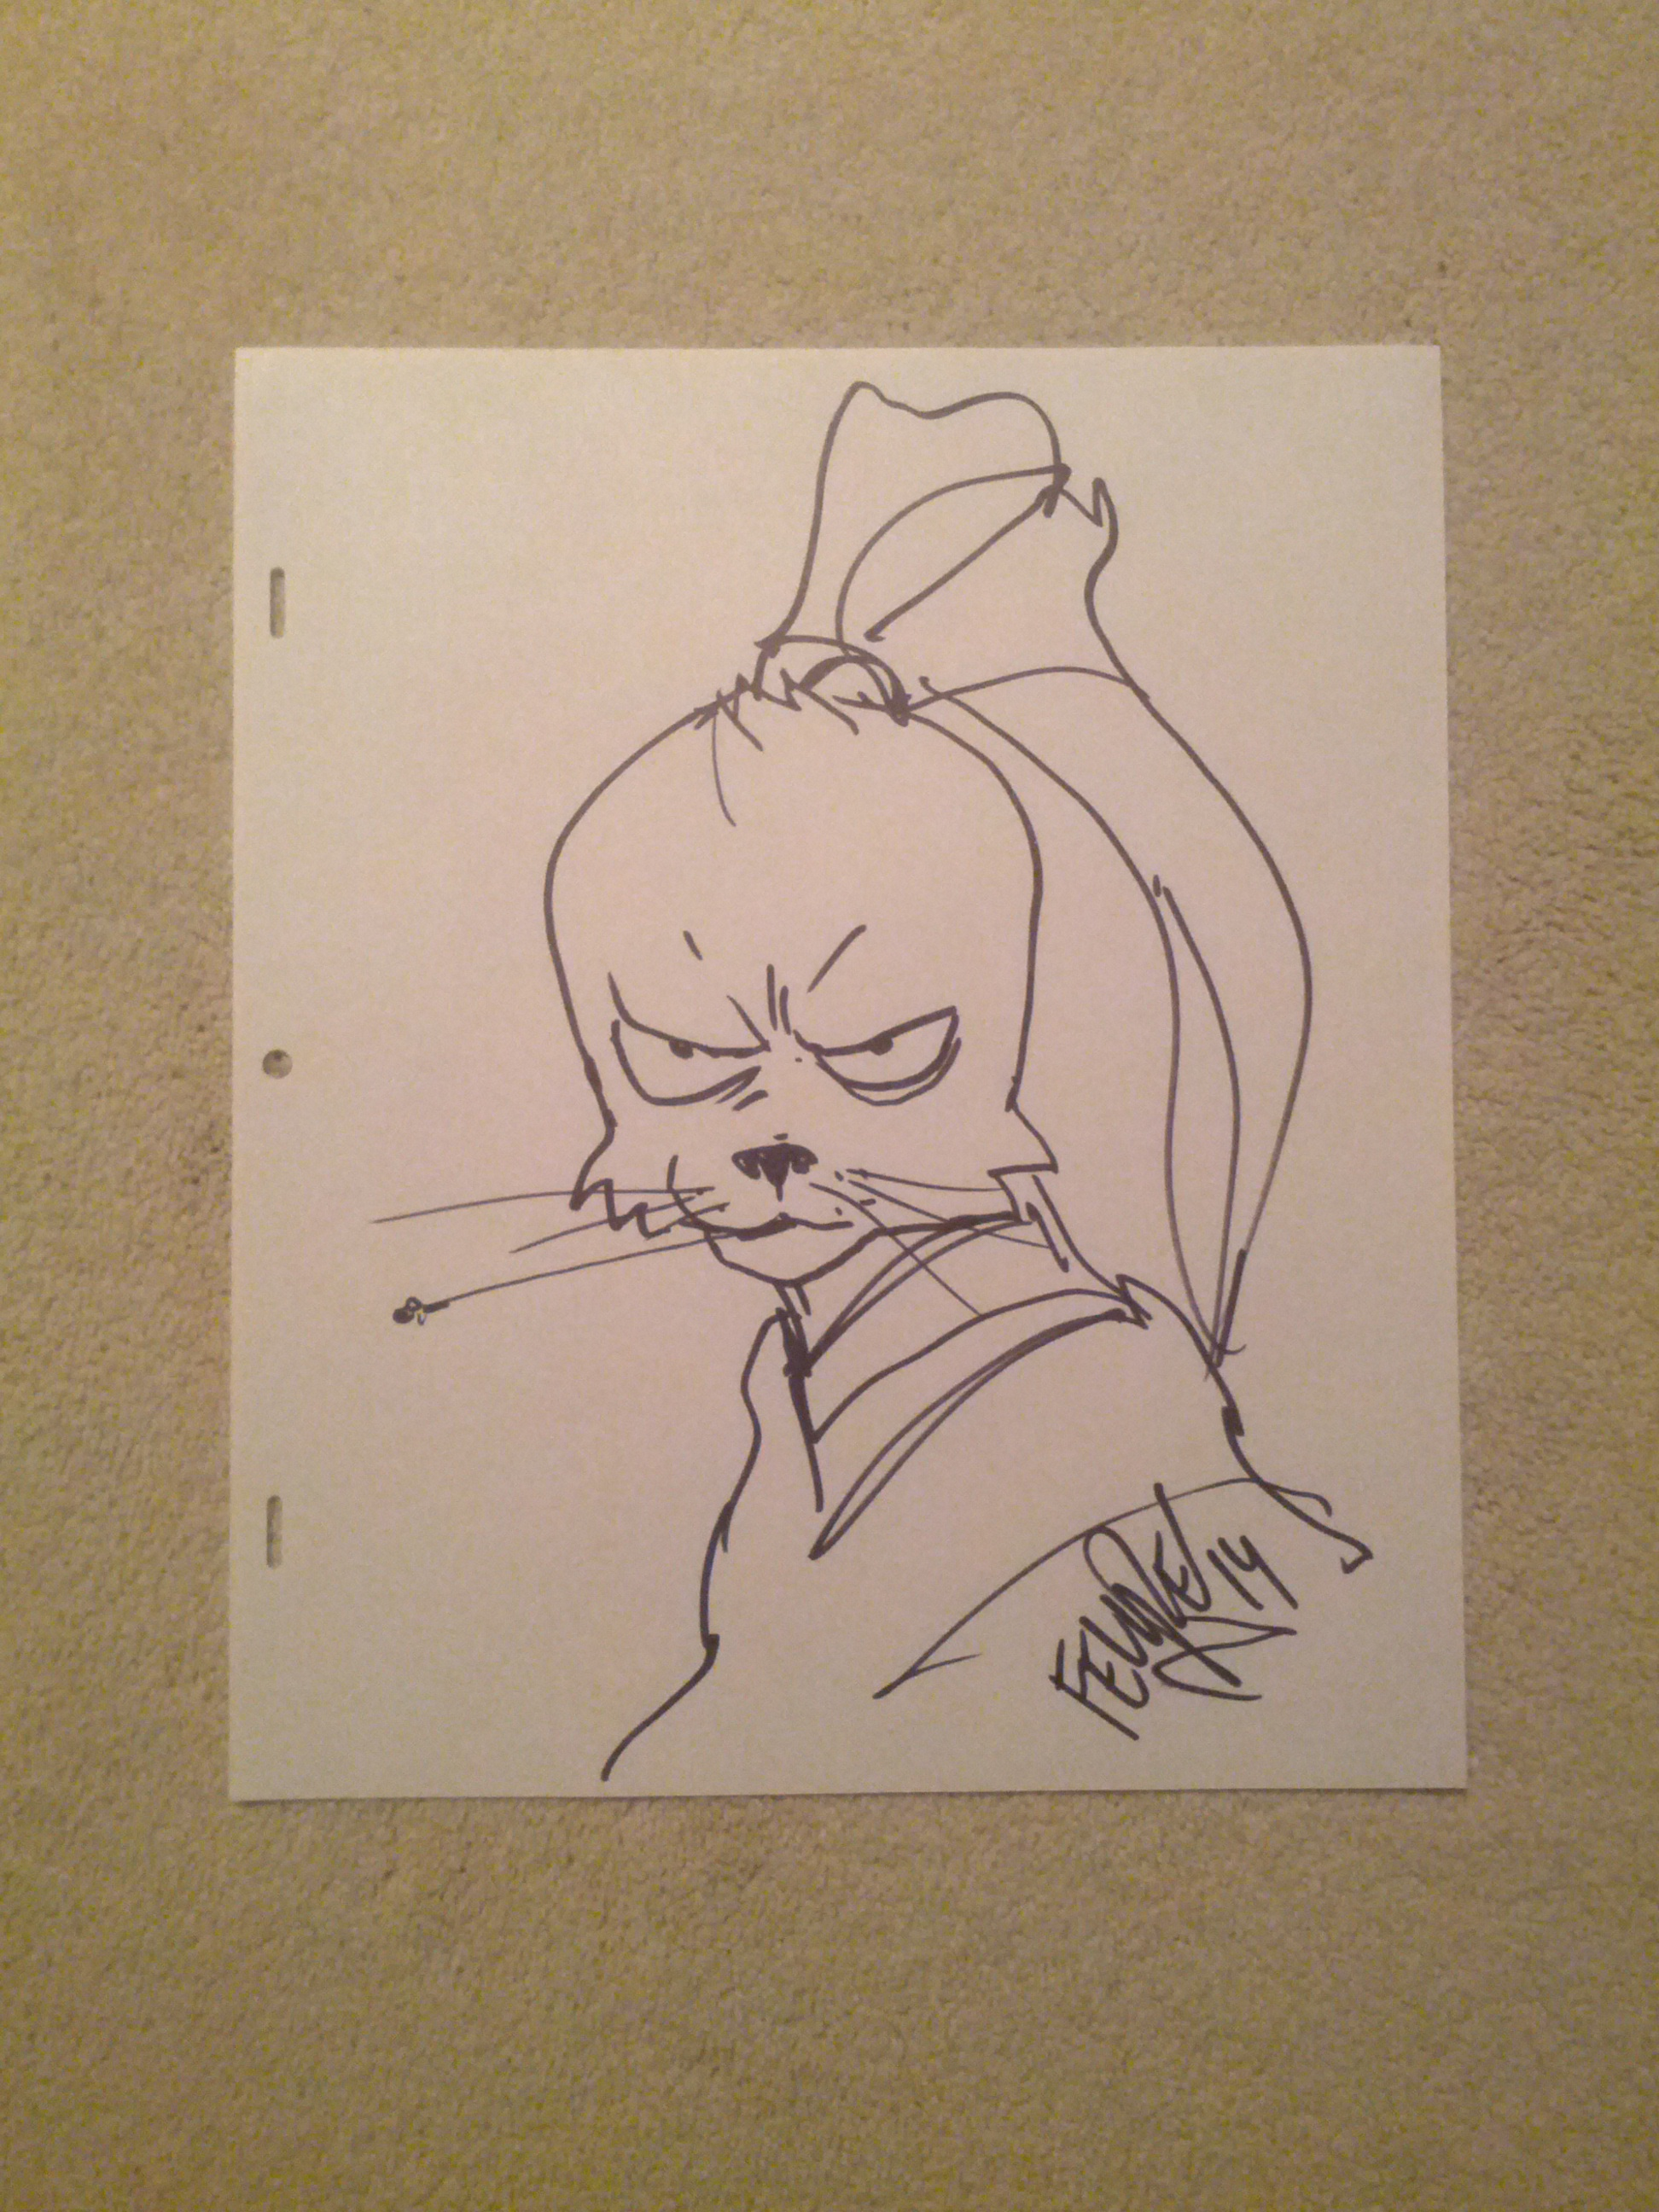 Felipe_Smith_Usagi_Yojimbo_Drawing